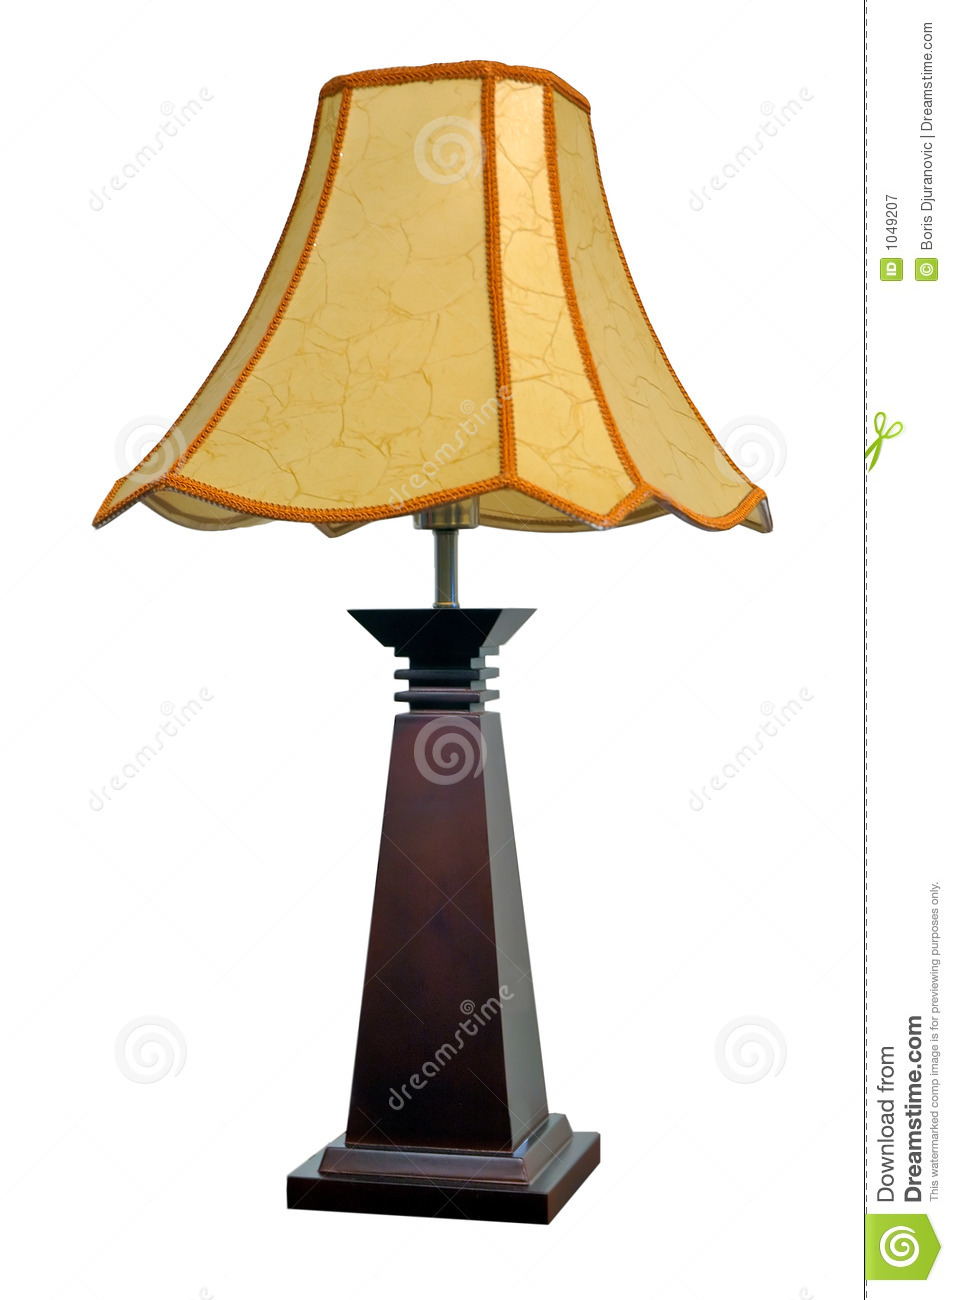 Wonderful House Lamp